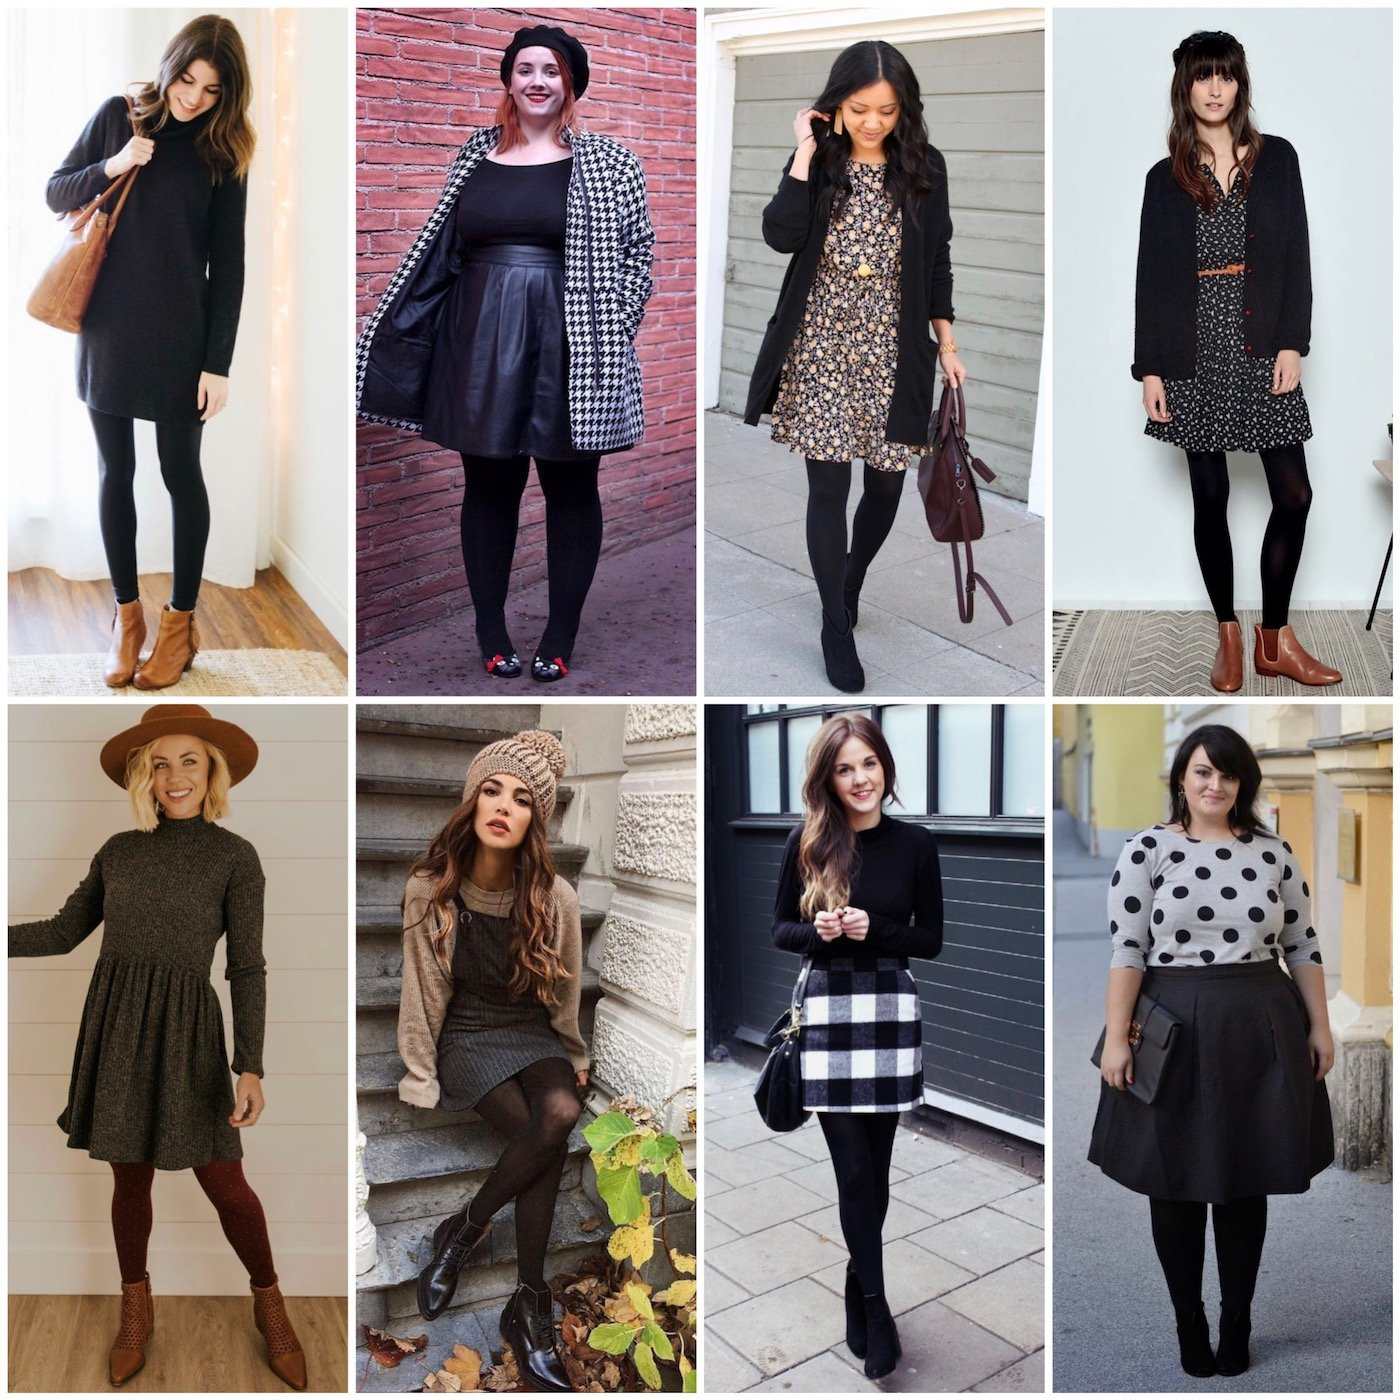 winter dresses on other women